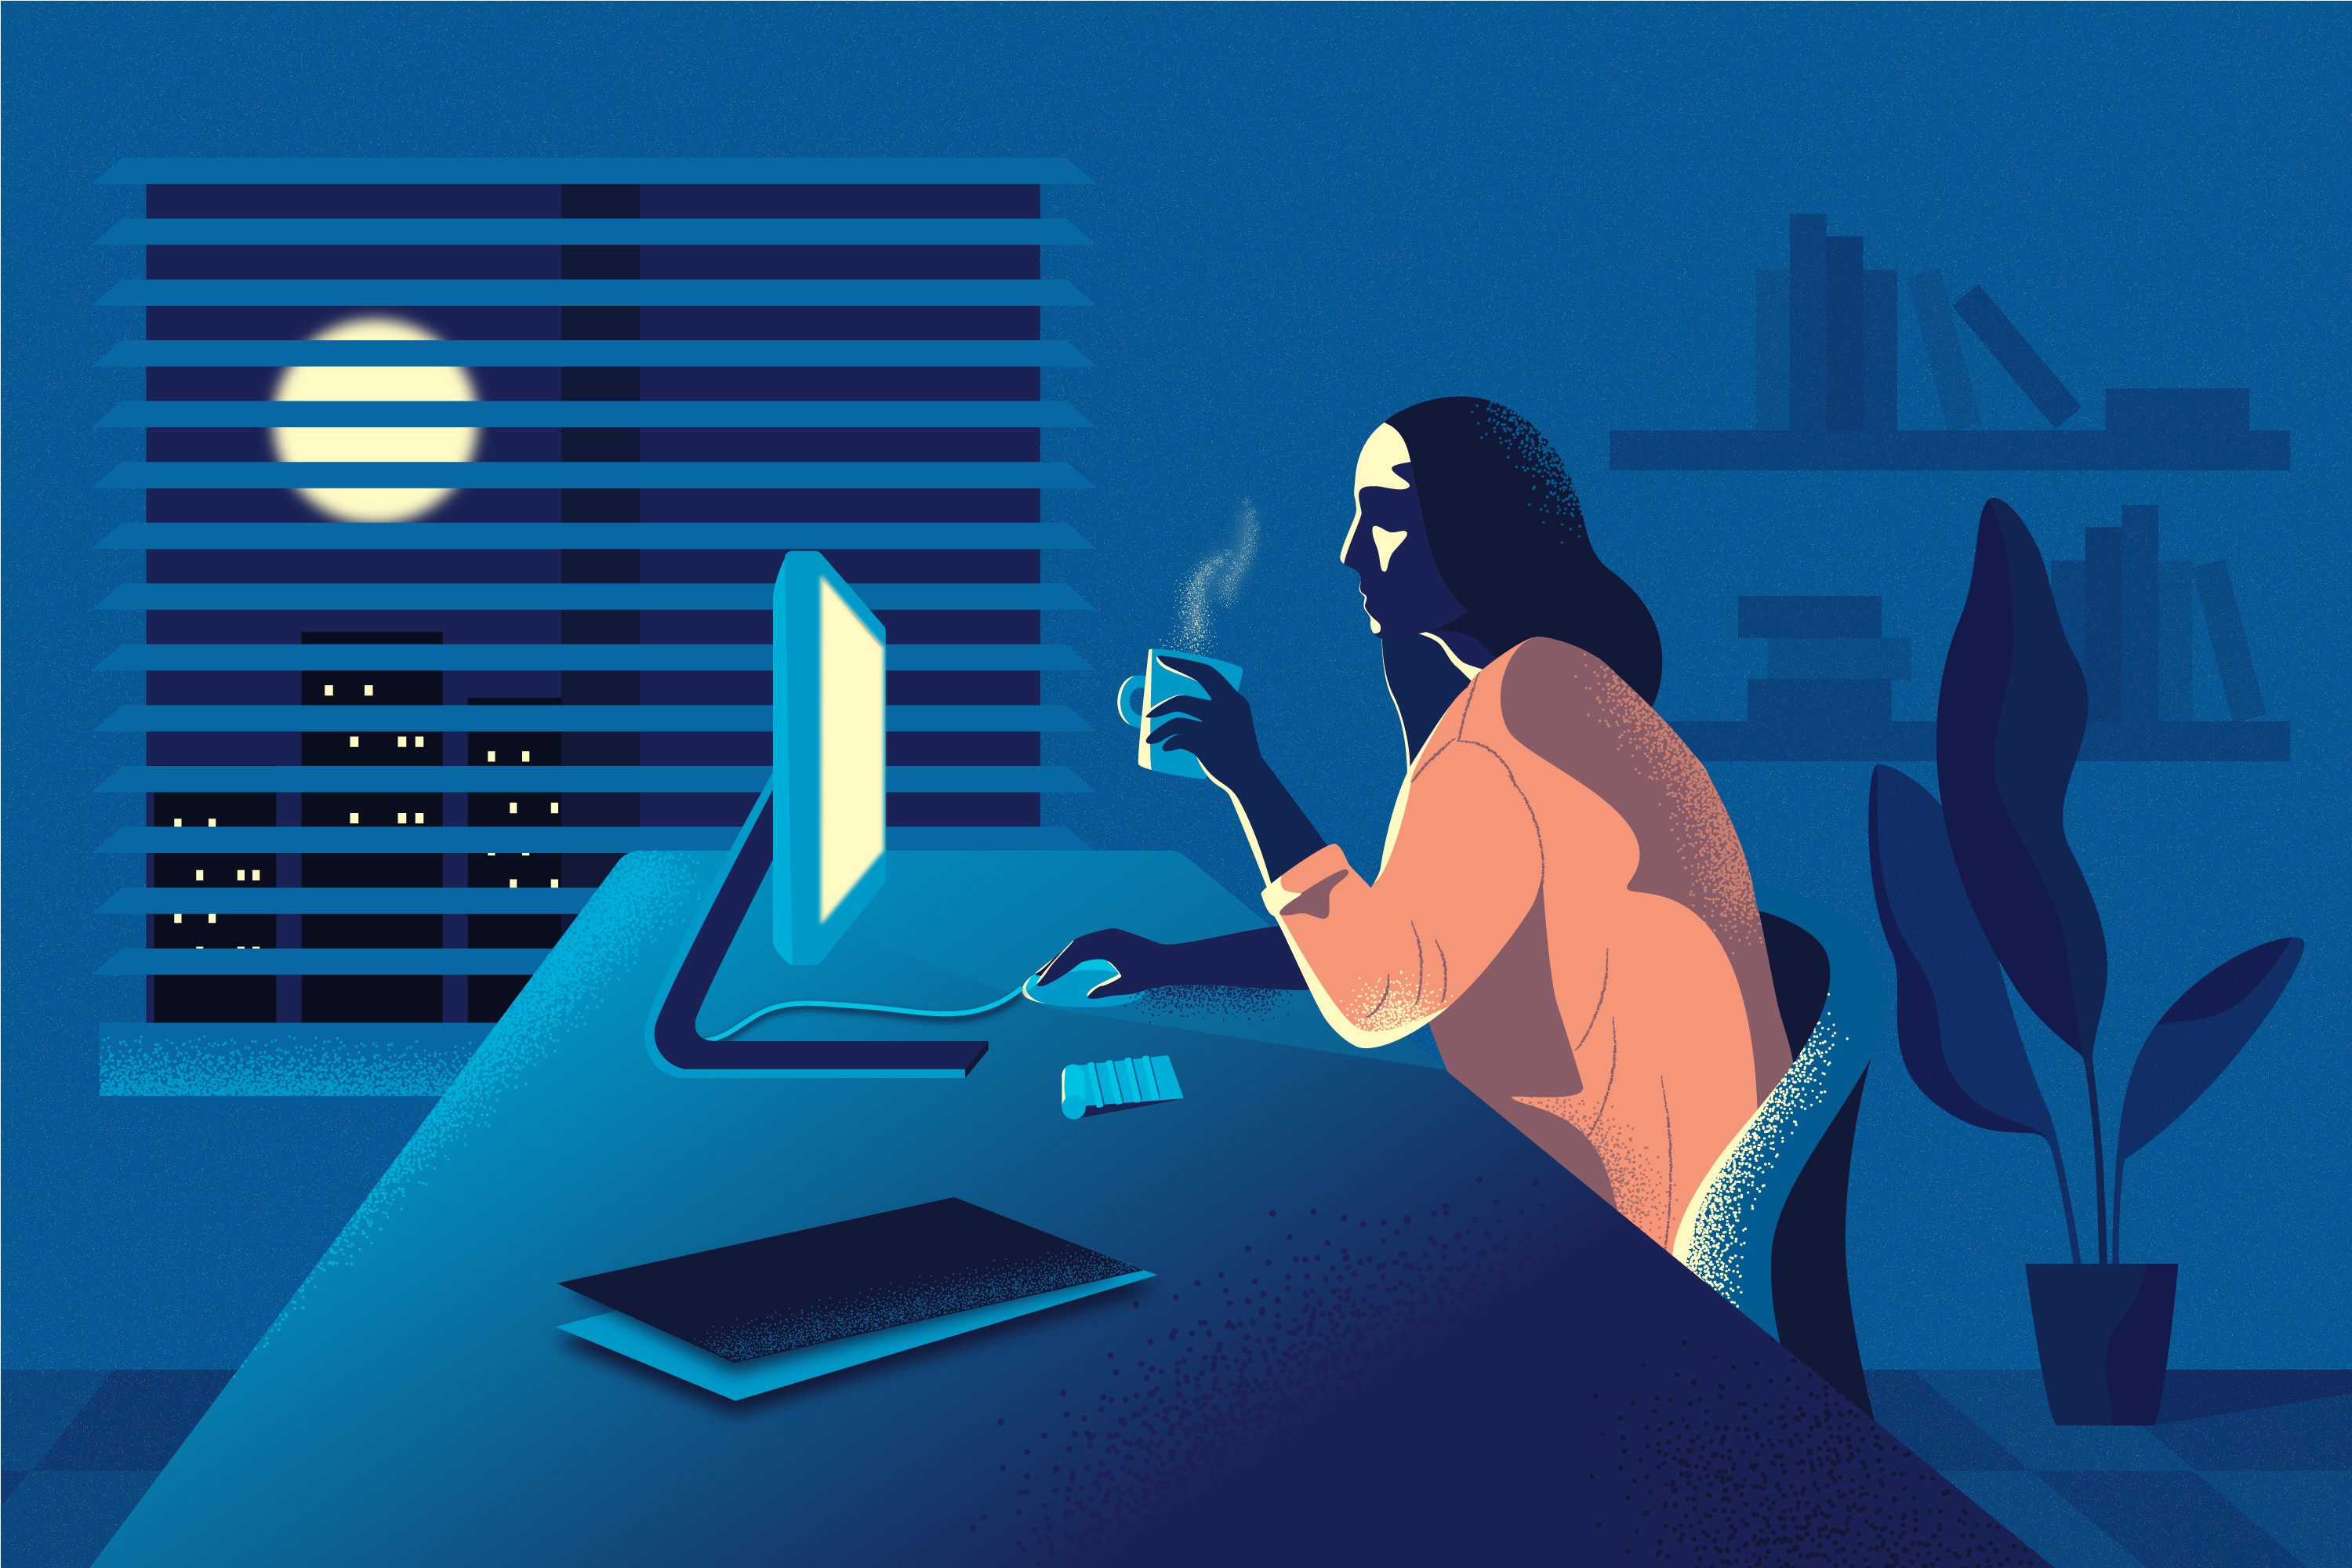 An illustration of a woman holding a cup of coffee and looking at her computer late at night.